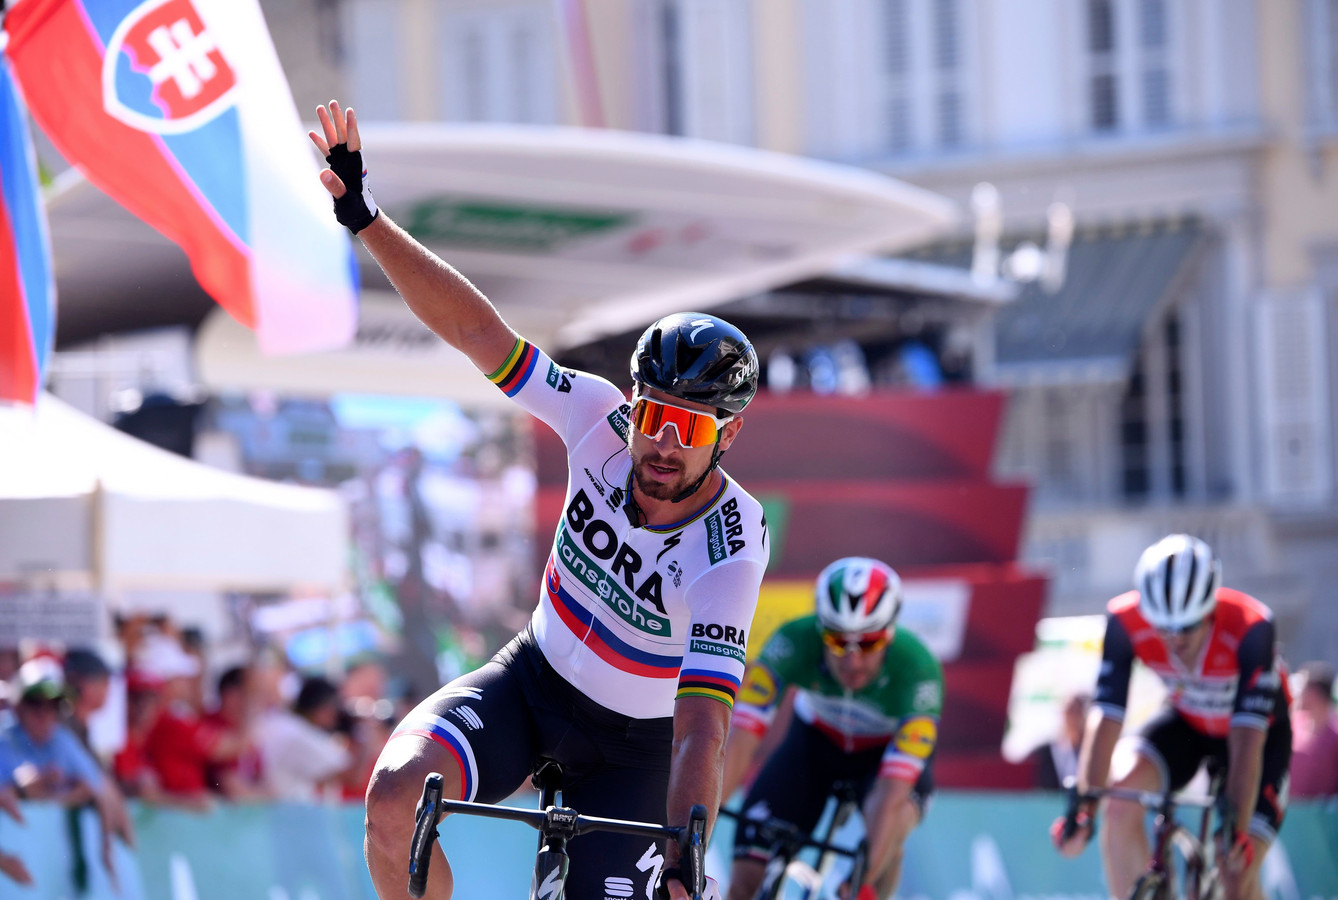 Peter Sagan is de snelste in de sprint.